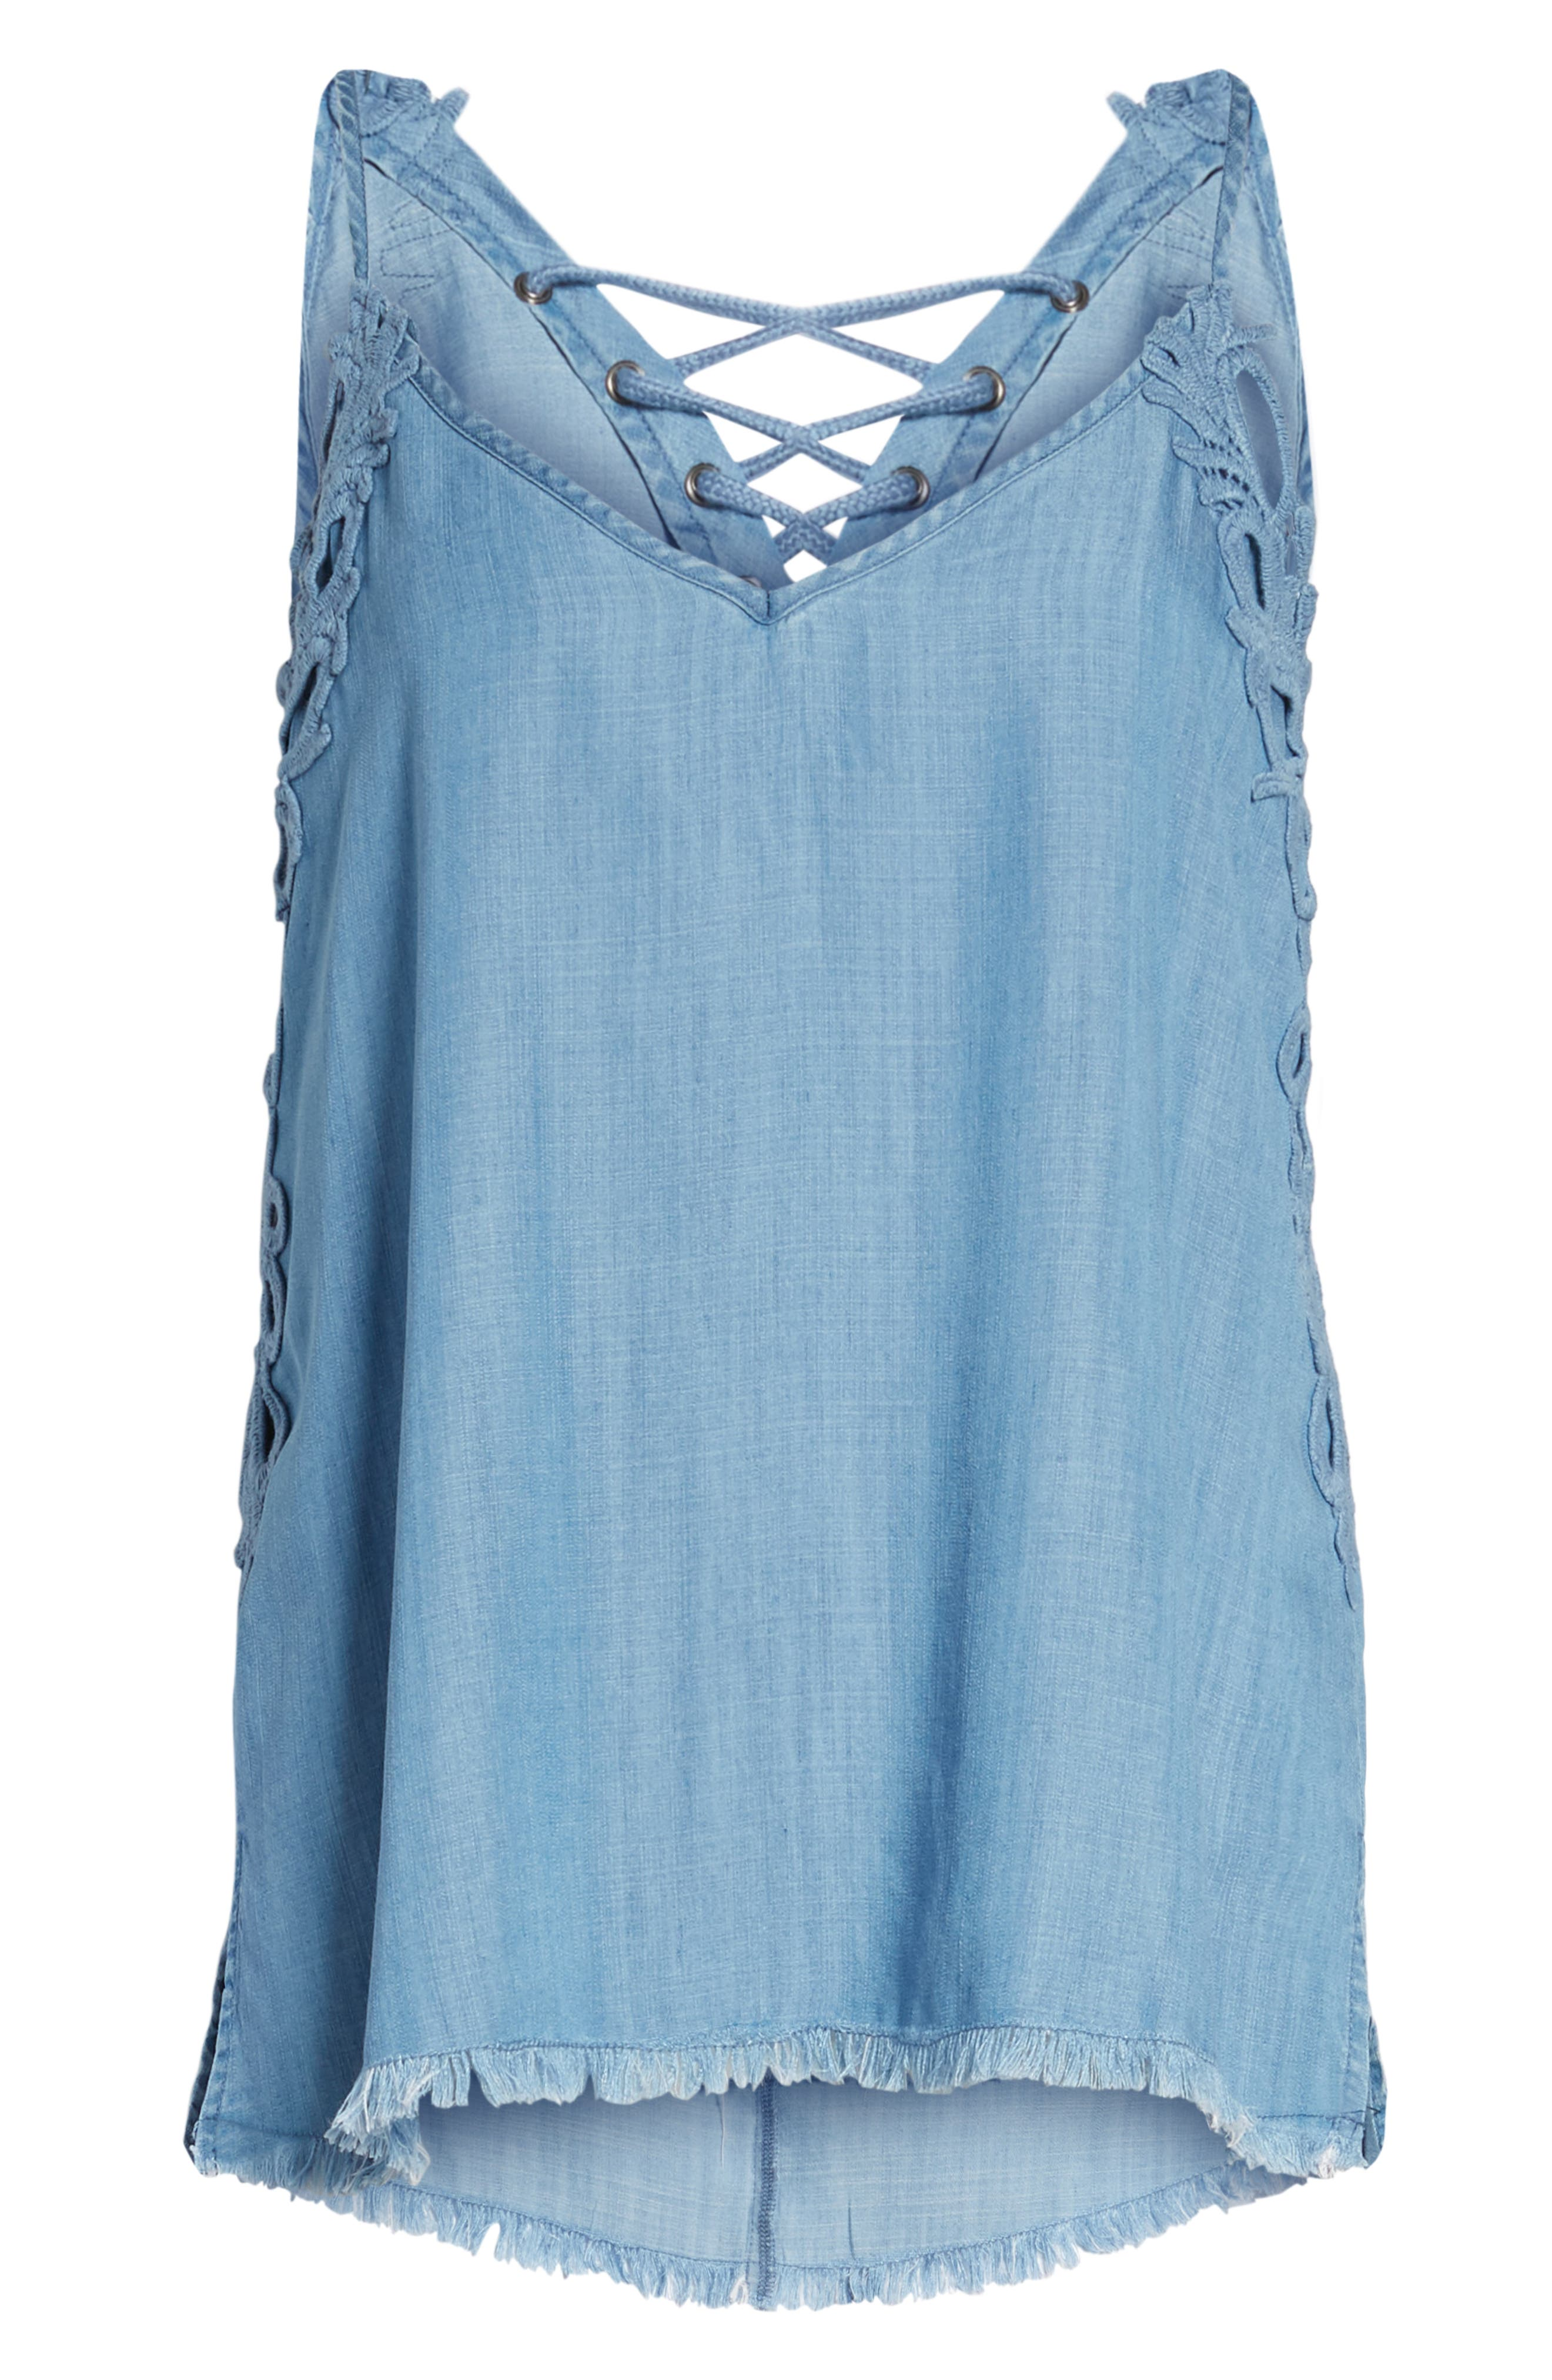 Chambray Camisole Top,                             Alternate thumbnail 6, color,                             BLUE